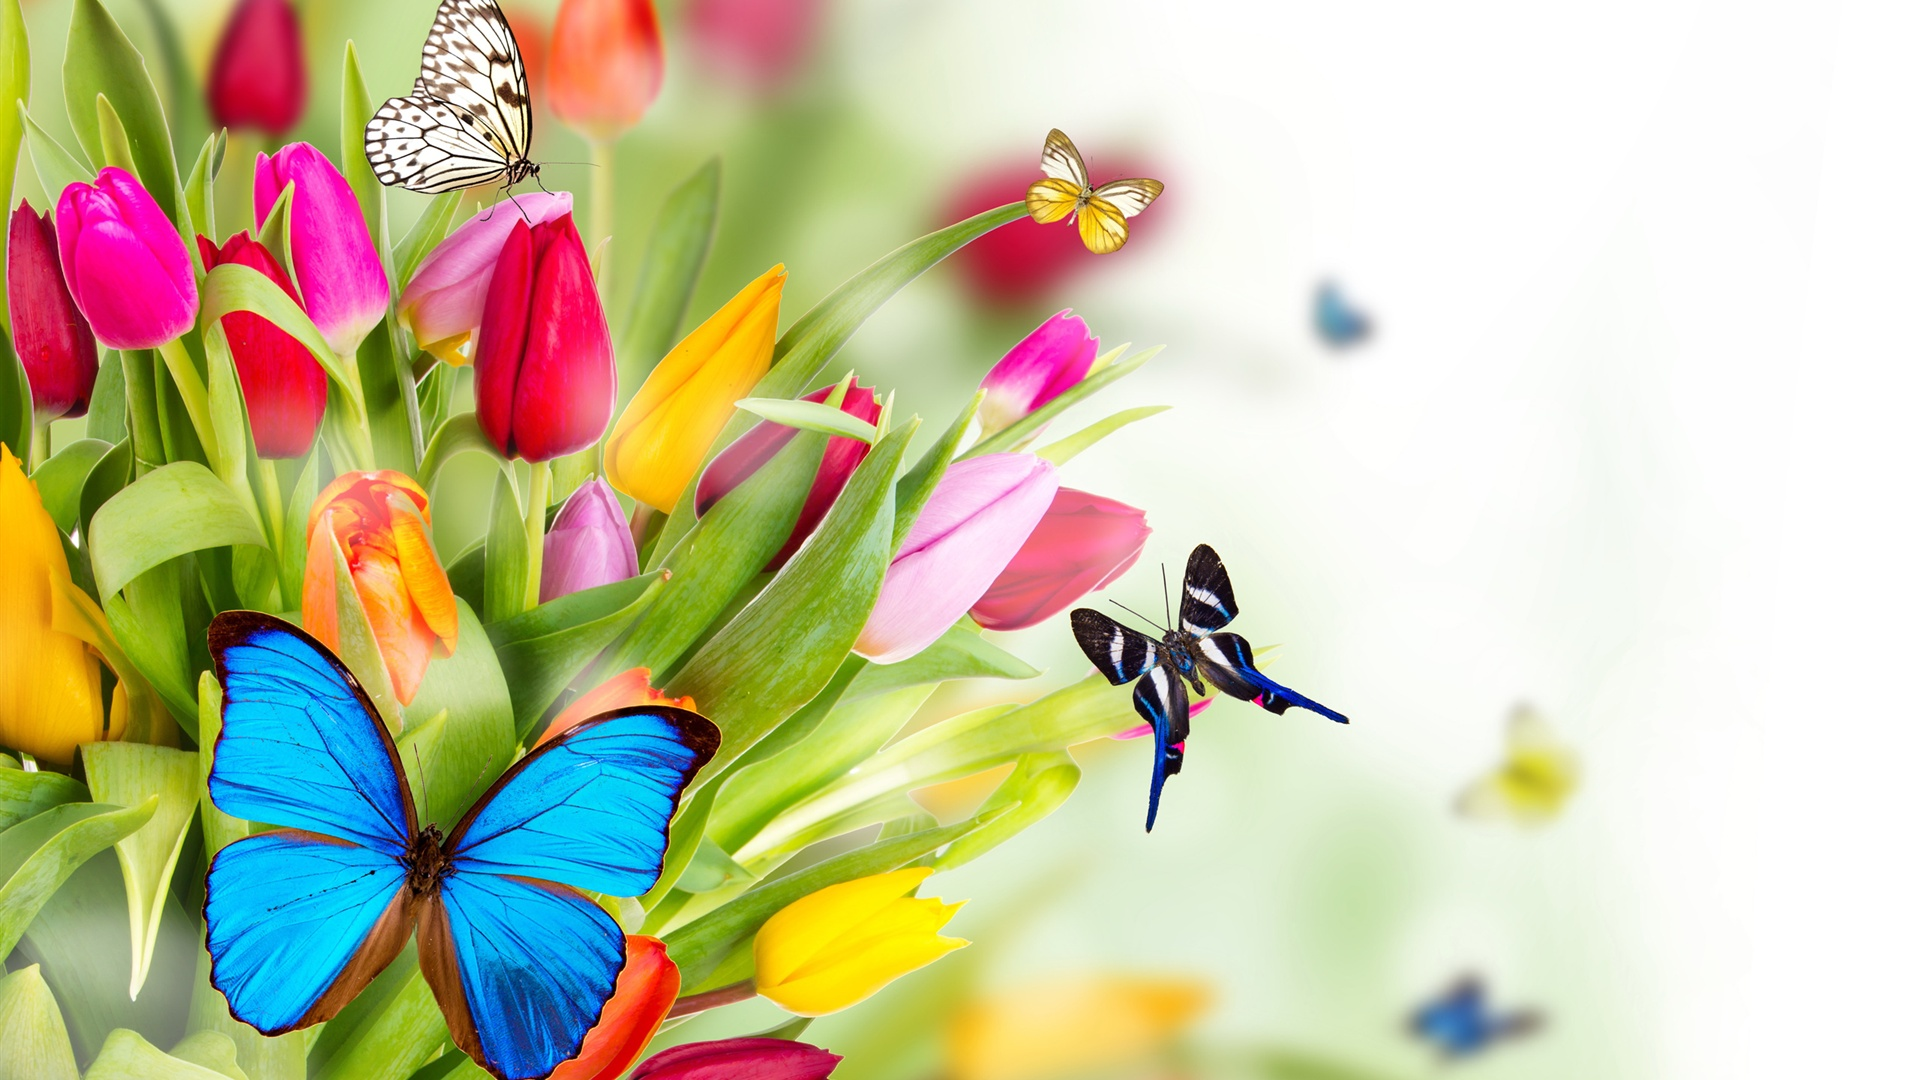 Wallpaper Tulip Flowers And Butterfly 2560x1600 Hd Picture Image